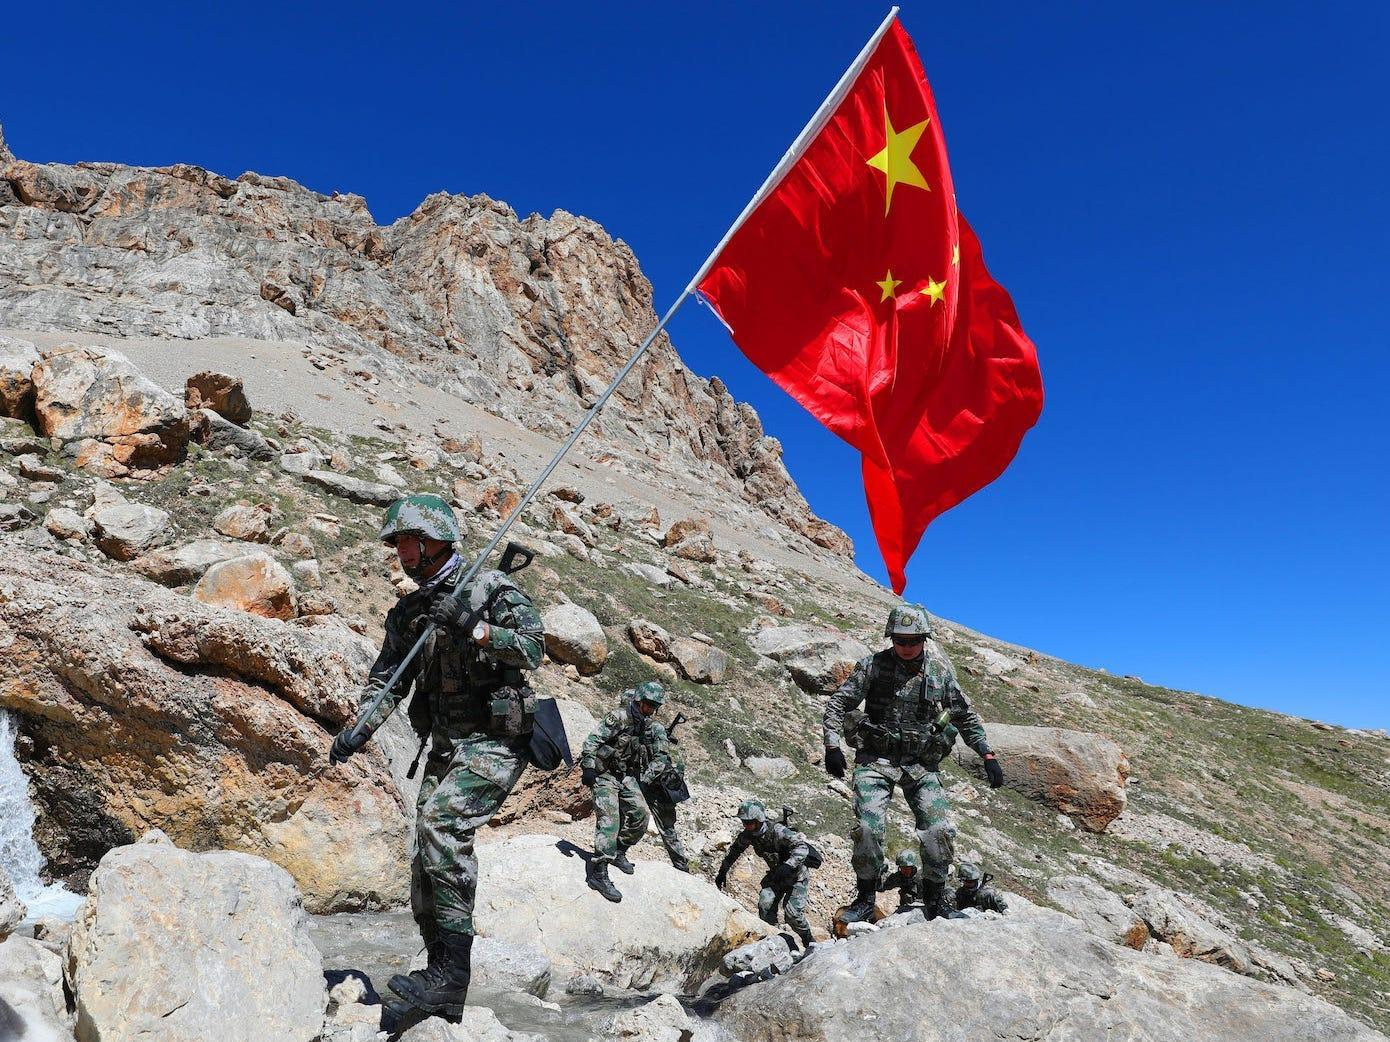 As the US scrambles out of Afghanistan, warnings grow about what China plans to do there - Yahoo News